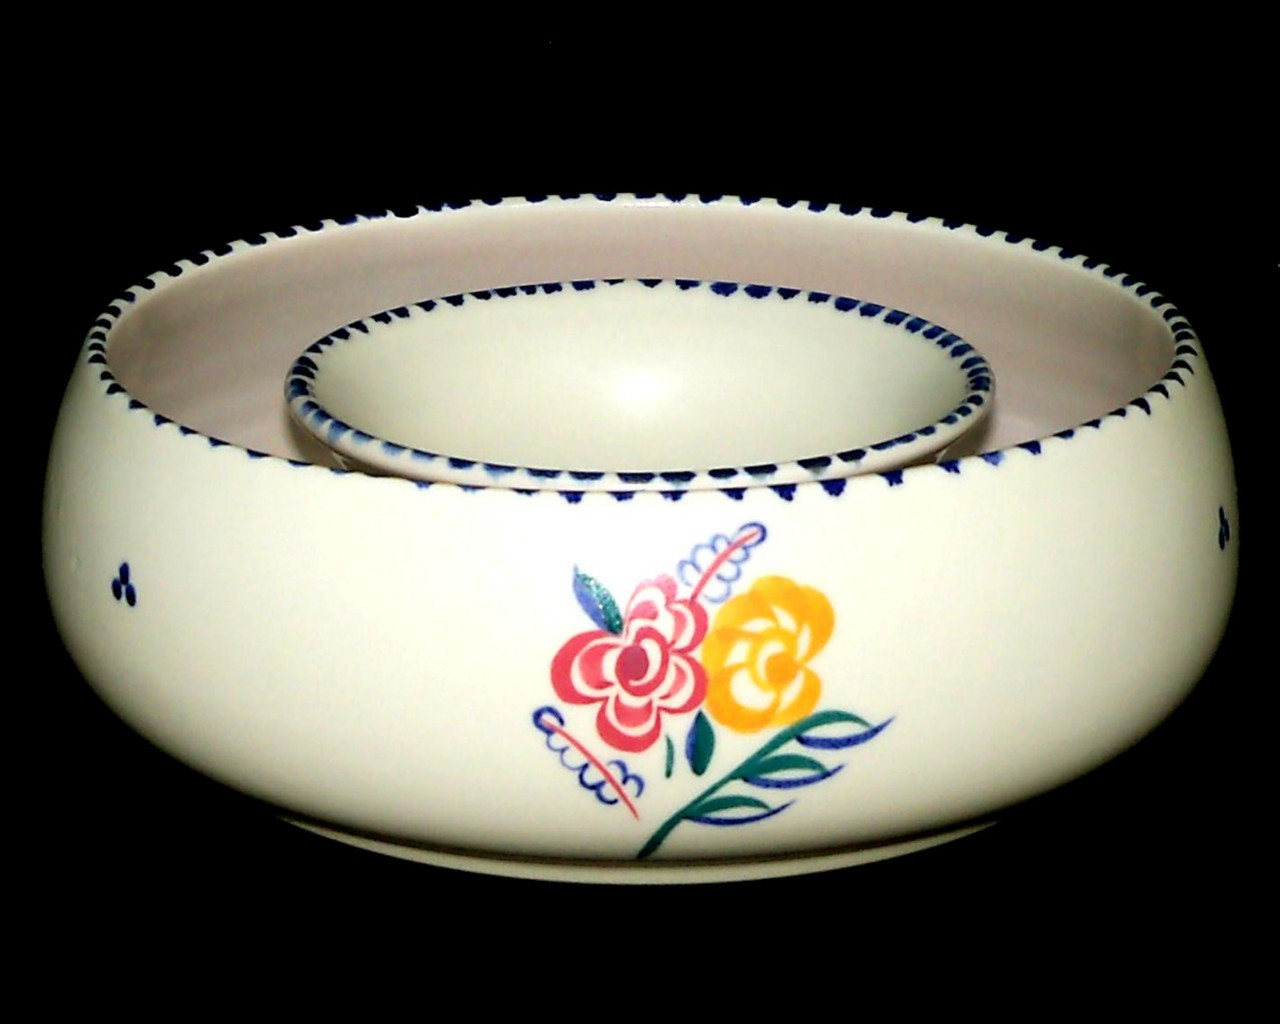 Poole Pottery FLORIANA SPRIG Decorated Hand Painted Posy Ring KW Design 188 Pool Pottery